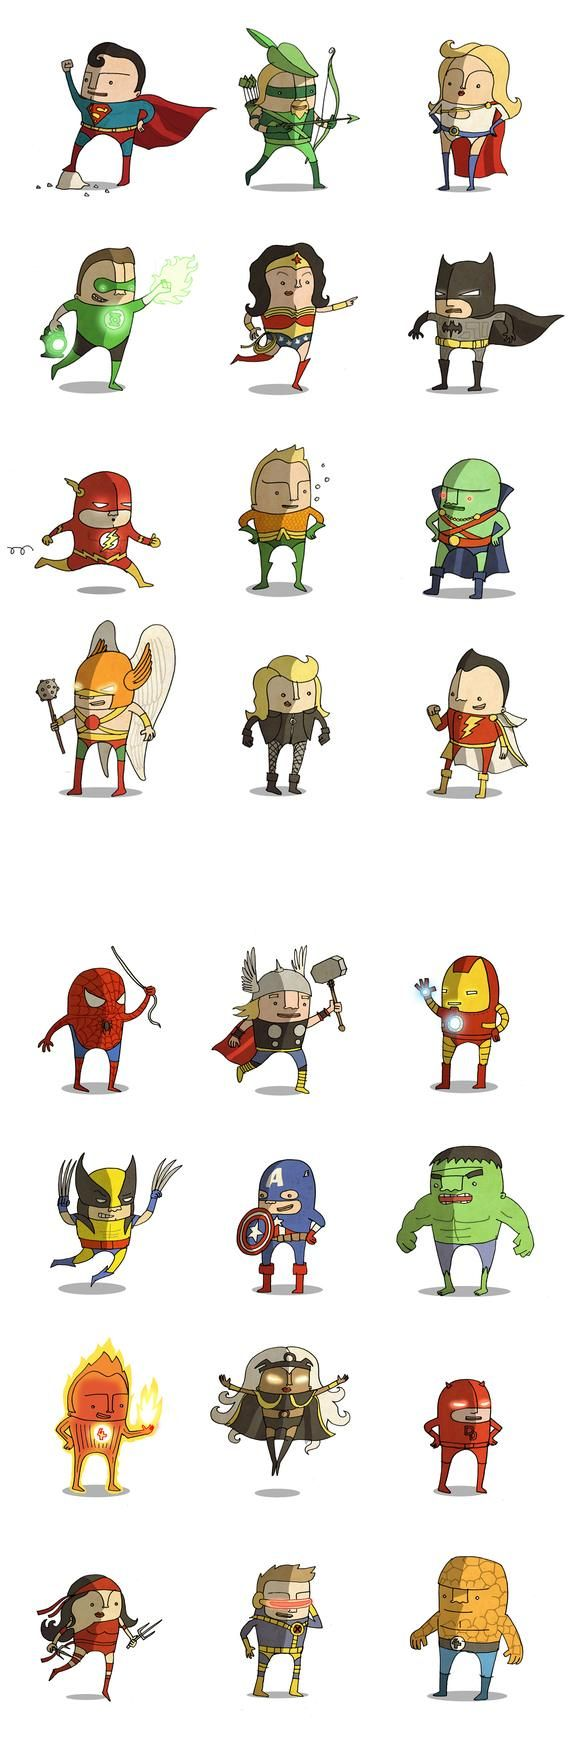 Graciosas mini caricaturas de superhéroes de Marvel y DC Comics (Adorable!)